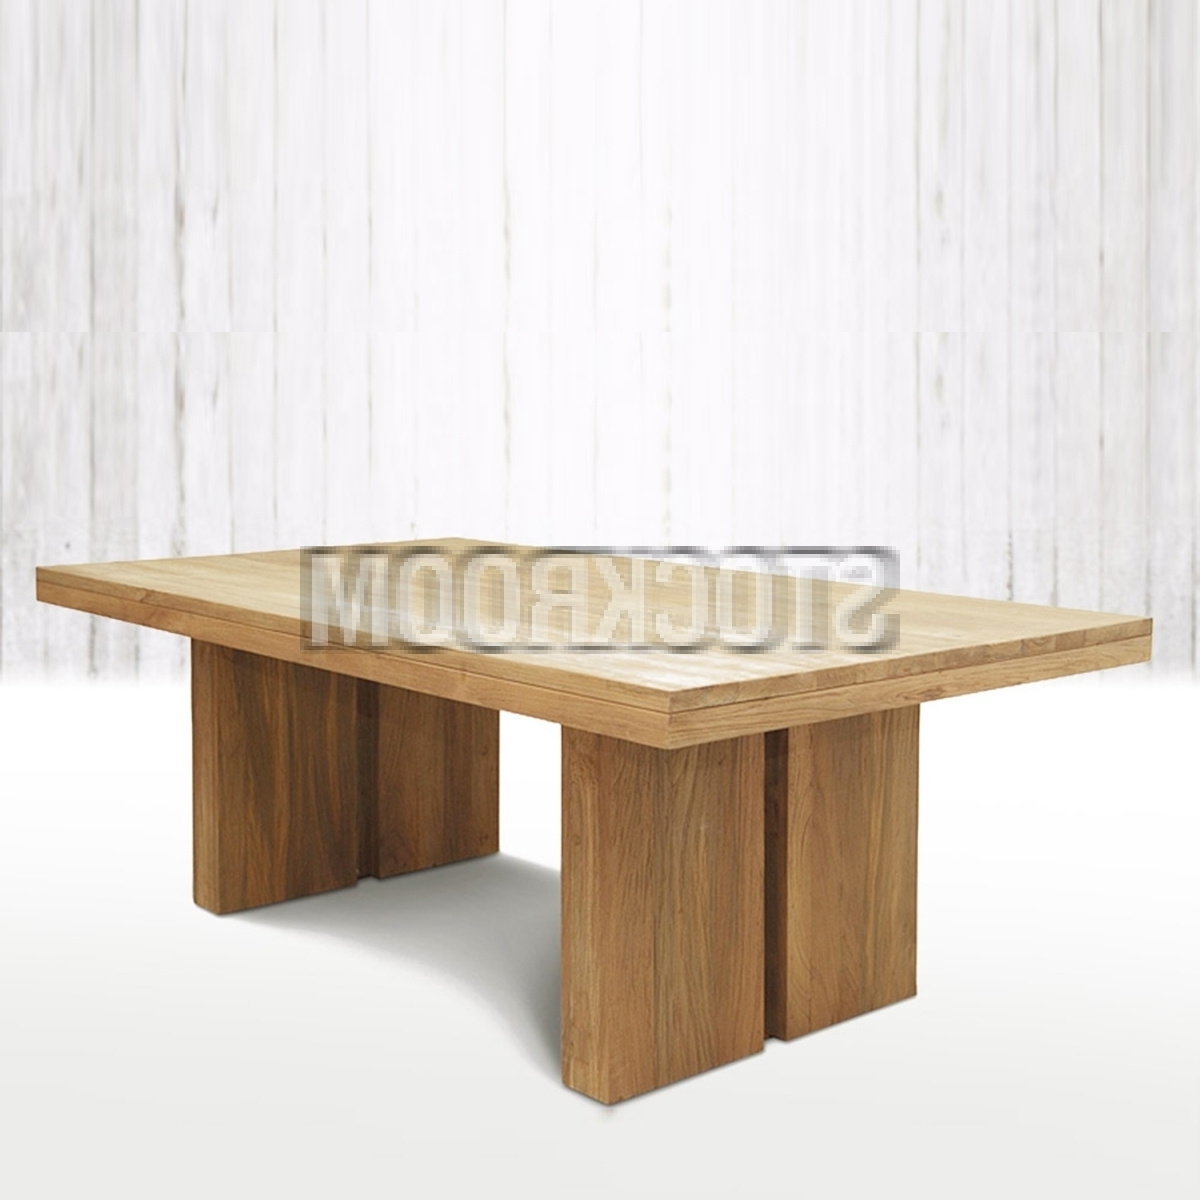 [%Noah Solid Oak Wood Dining Table [Dtaok215] – Hk$7,999.00 For Most Popular Noah Dining Tables|Noah Dining Tables Inside 2018 Noah Solid Oak Wood Dining Table [Dtaok215] – Hk$7,999.00|Widely Used Noah Dining Tables Within Noah Solid Oak Wood Dining Table [Dtaok215] – Hk$7,999.00|Widely Used Noah Solid Oak Wood Dining Table [Dtaok215] – Hk$7, (View 1 of 25)